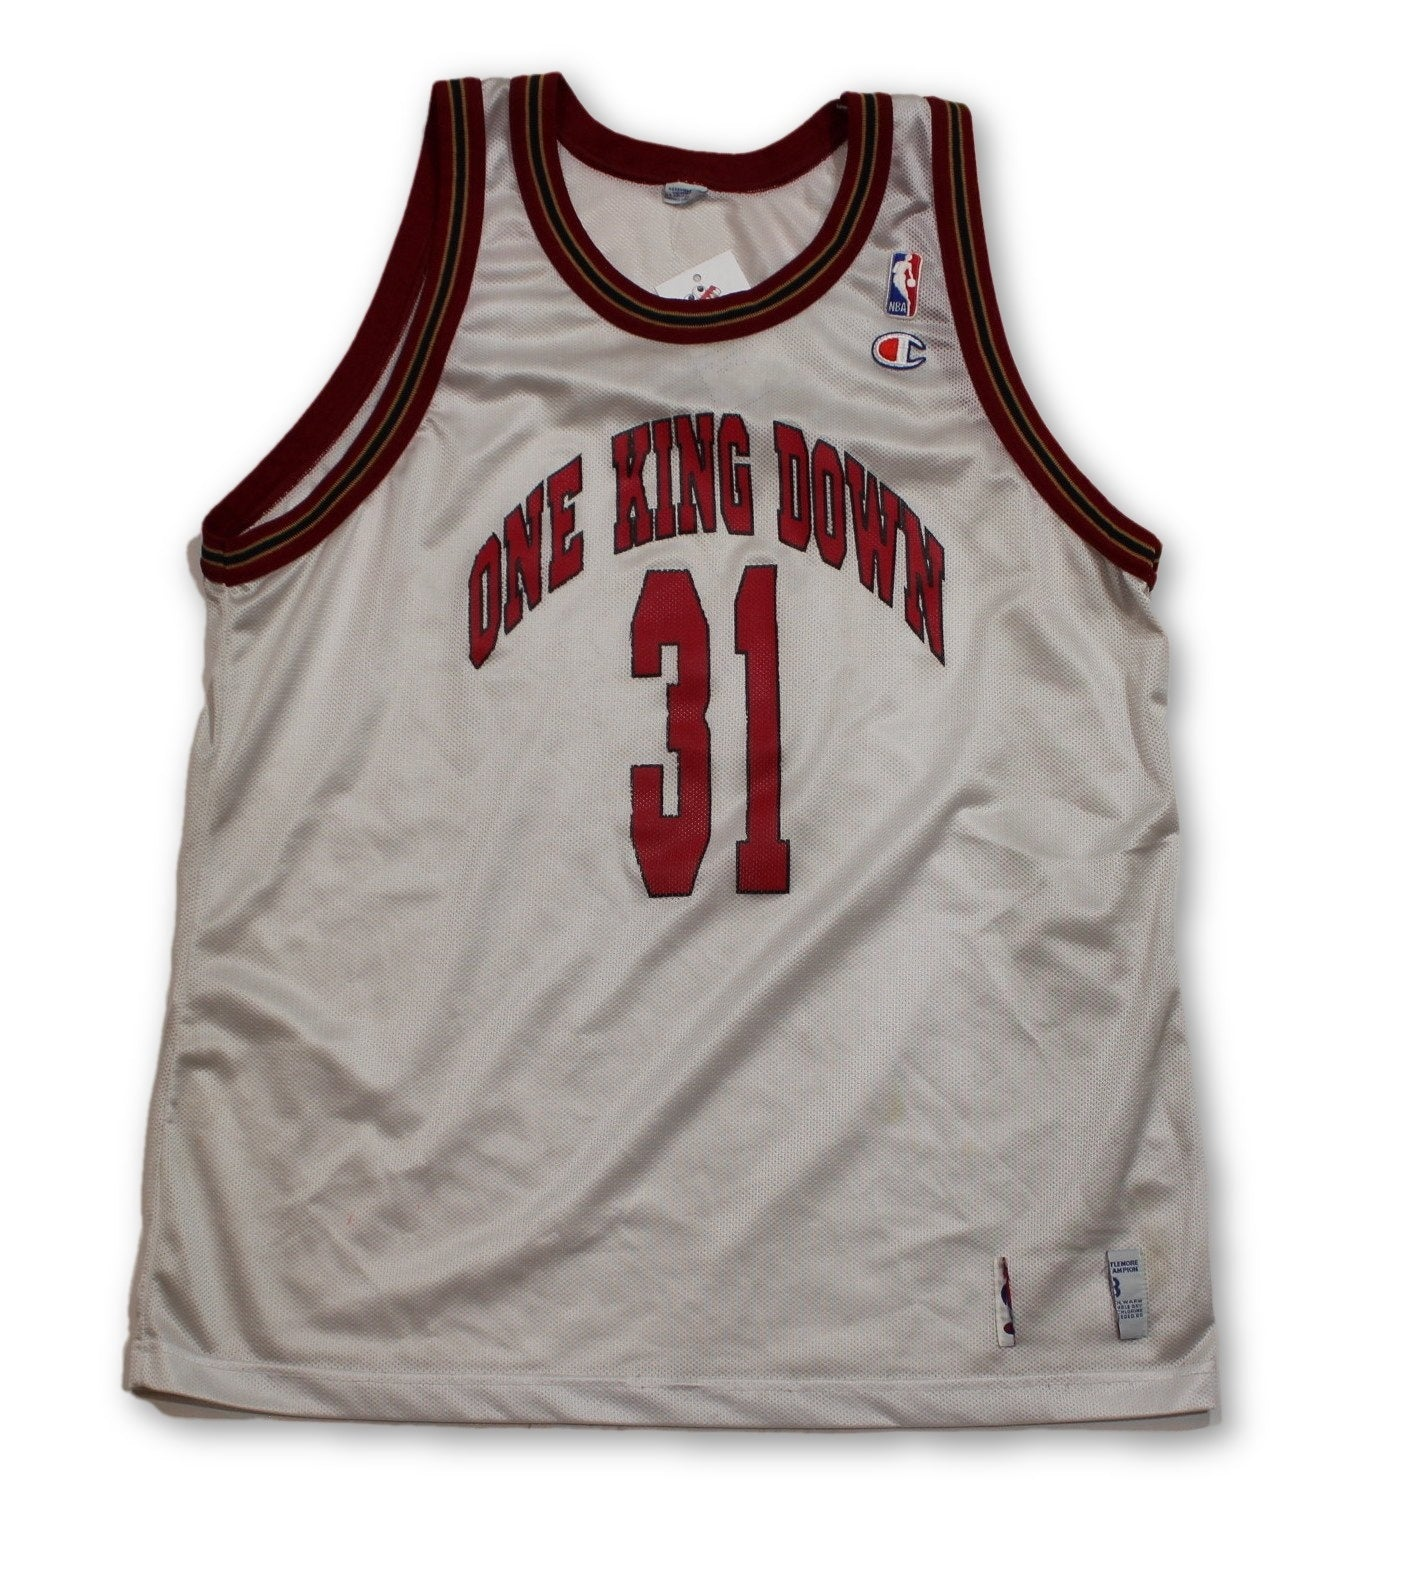 Vintage One King Down Basketball Jersey